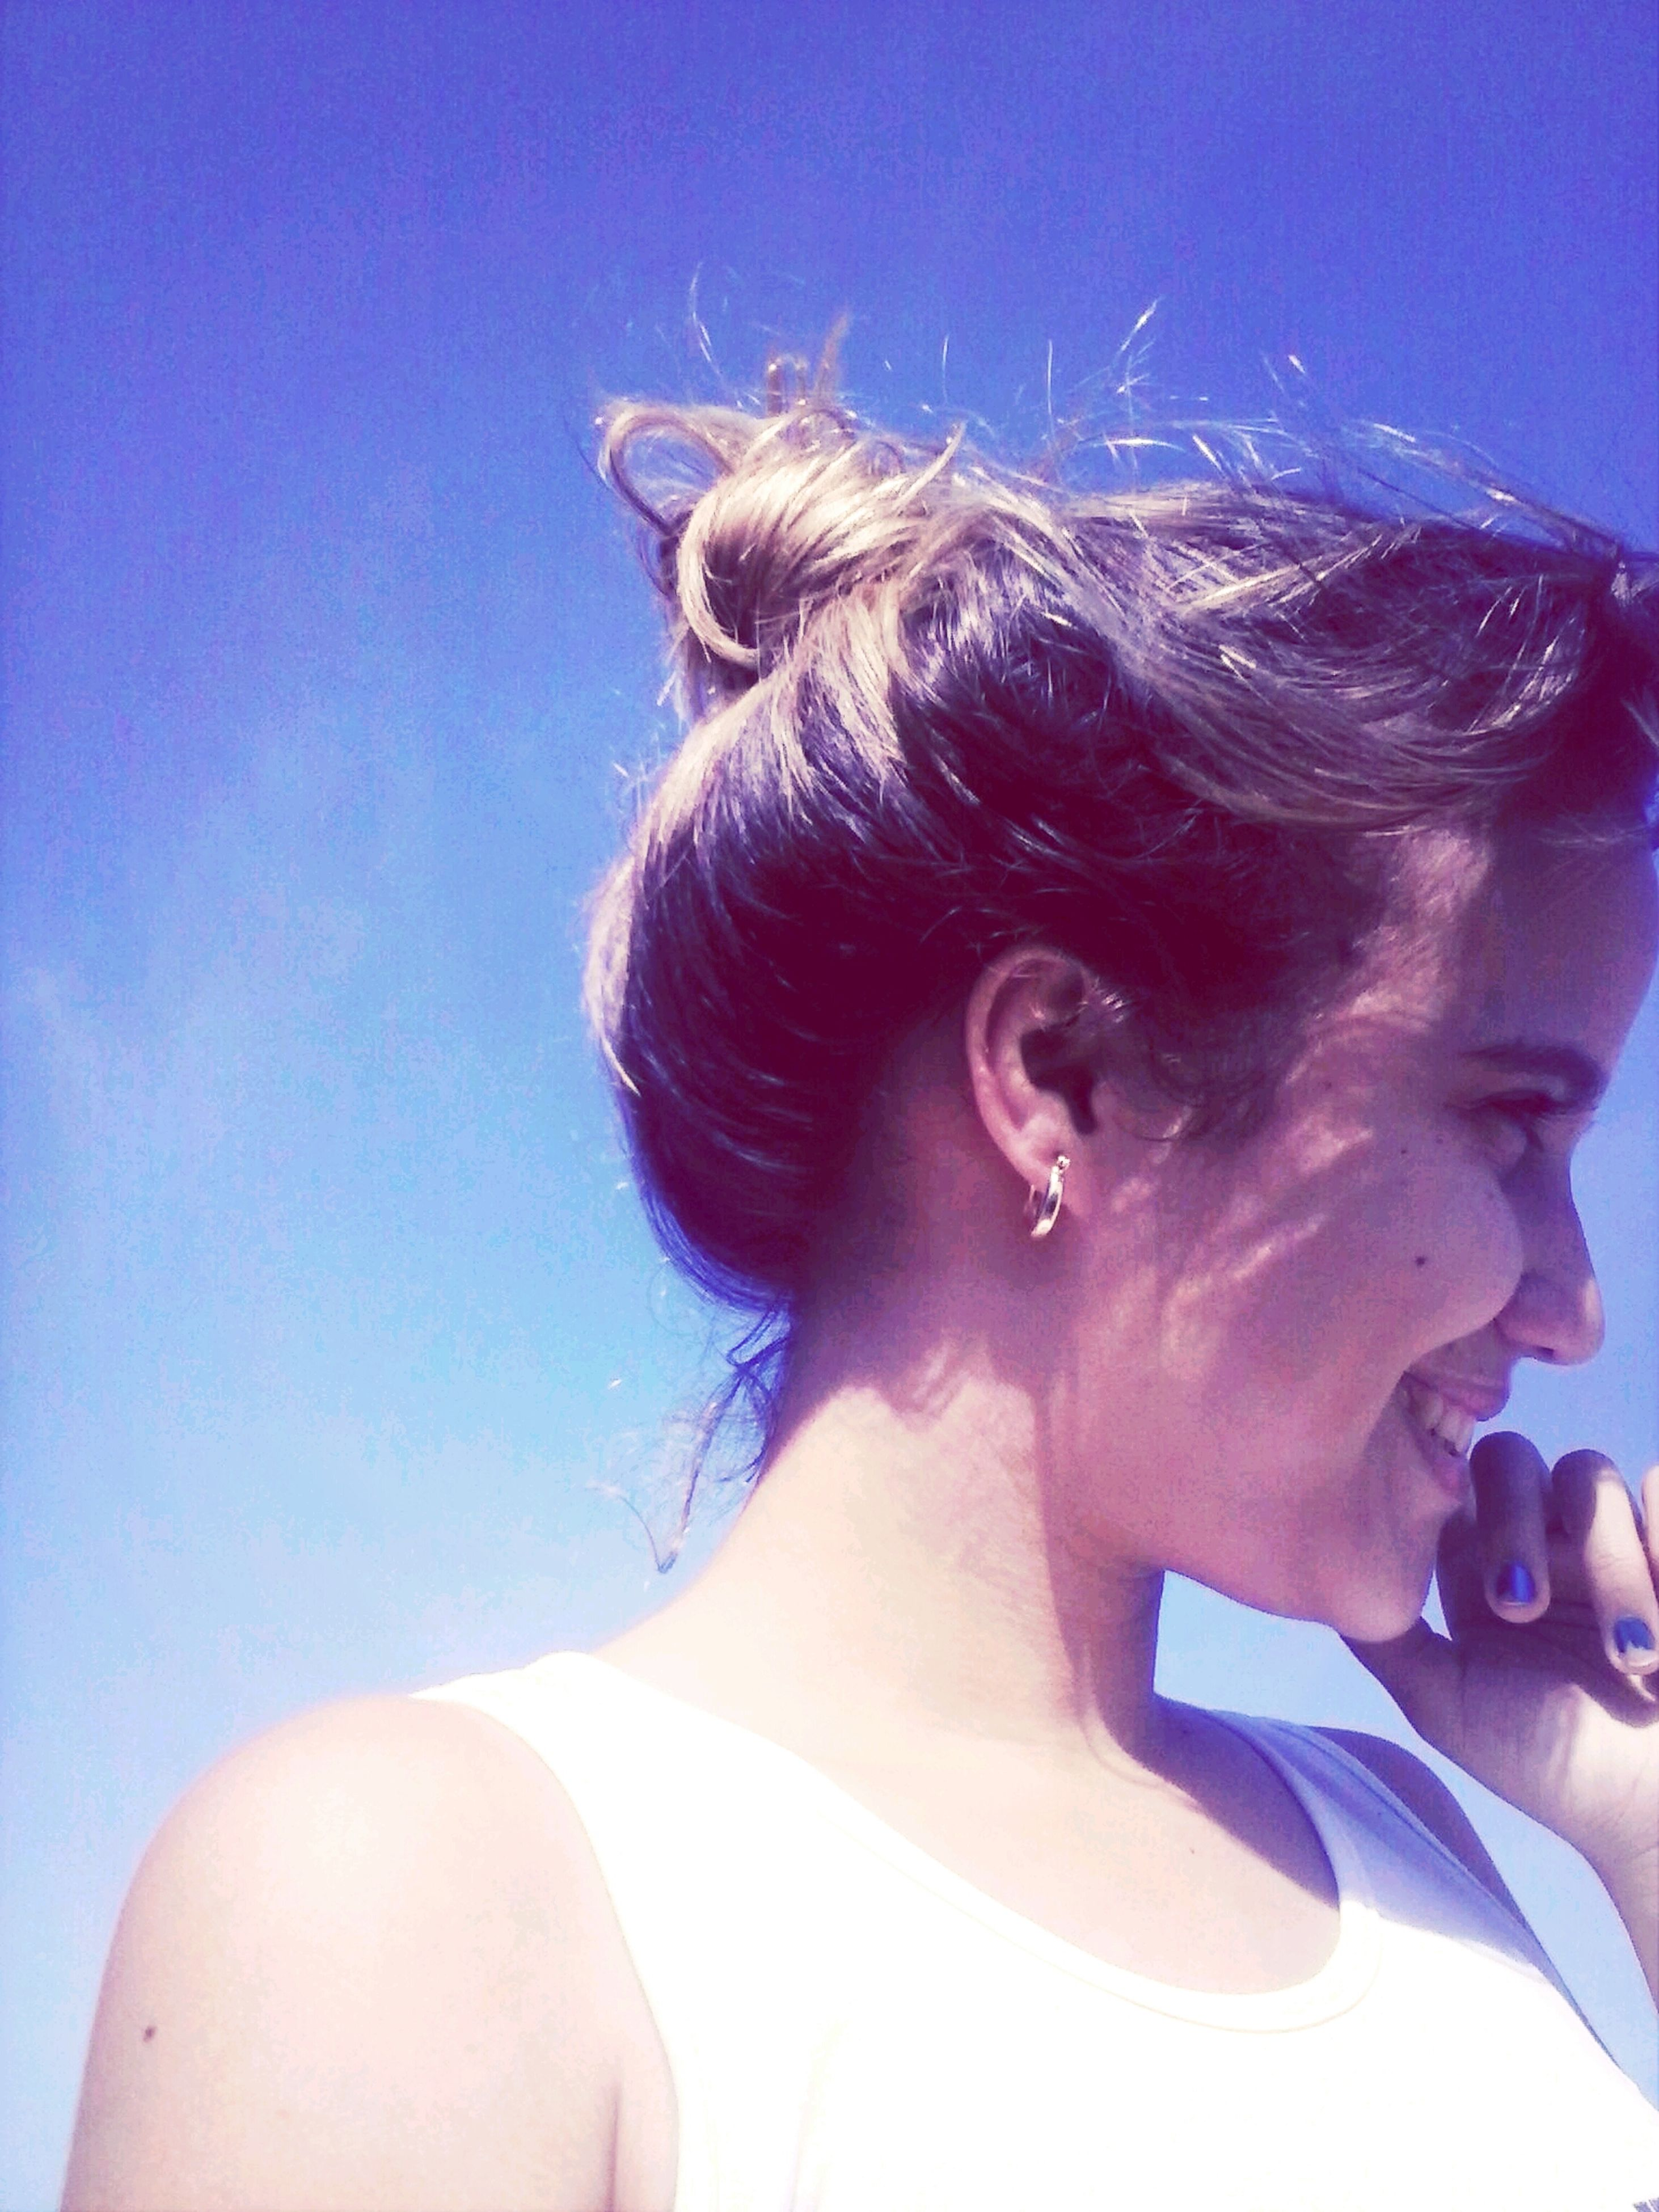 young adult, lifestyles, person, leisure activity, blue, headshot, young women, portrait, looking at camera, front view, clear sky, sunlight, head and shoulders, smiling, sunglasses, low angle view, long hair, happiness